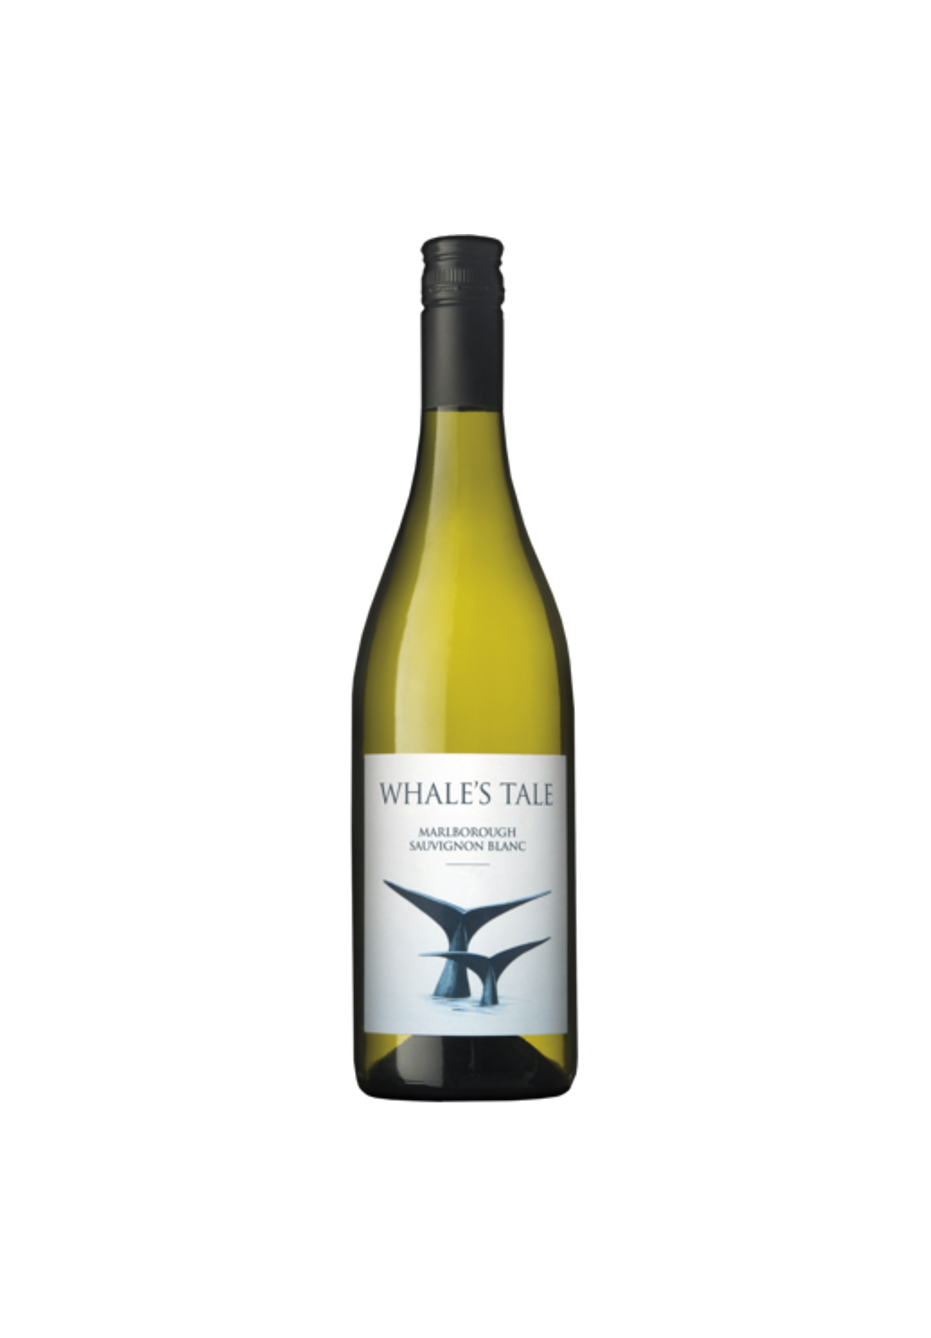 Whales Tail Marlborough Sauvignon Blanc 2017